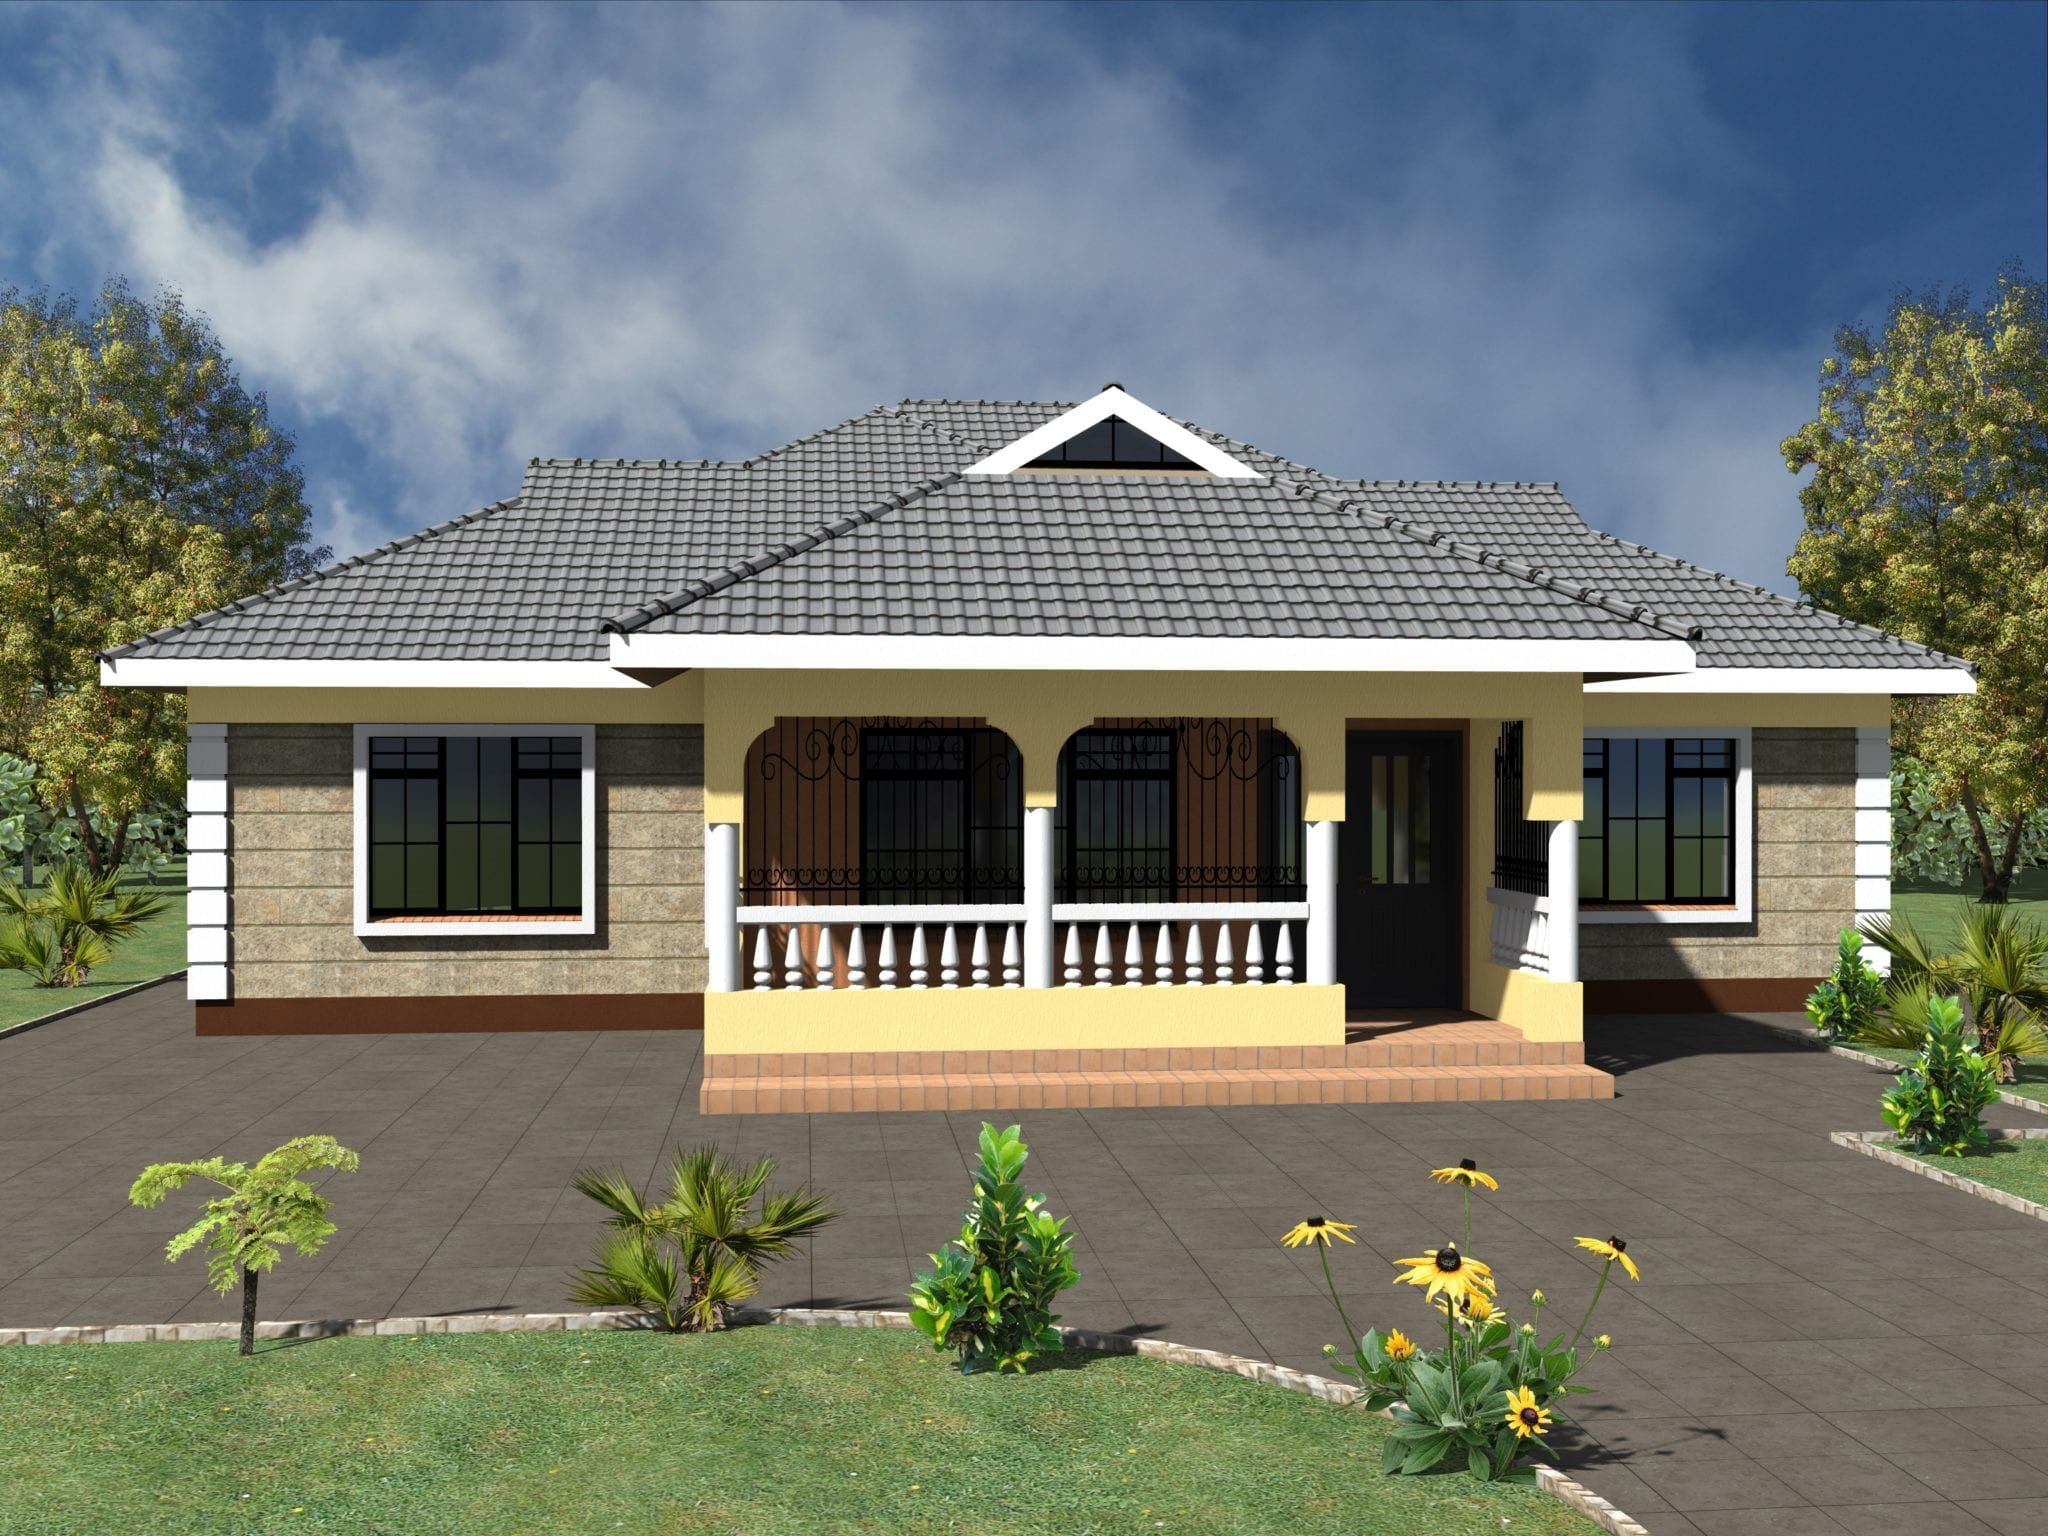 Simple 3 Bedroom House Plans Without Garage Hpd Consult In 2020 Three Bedroom House Plan Bedroom House Plans House Plan Gallery